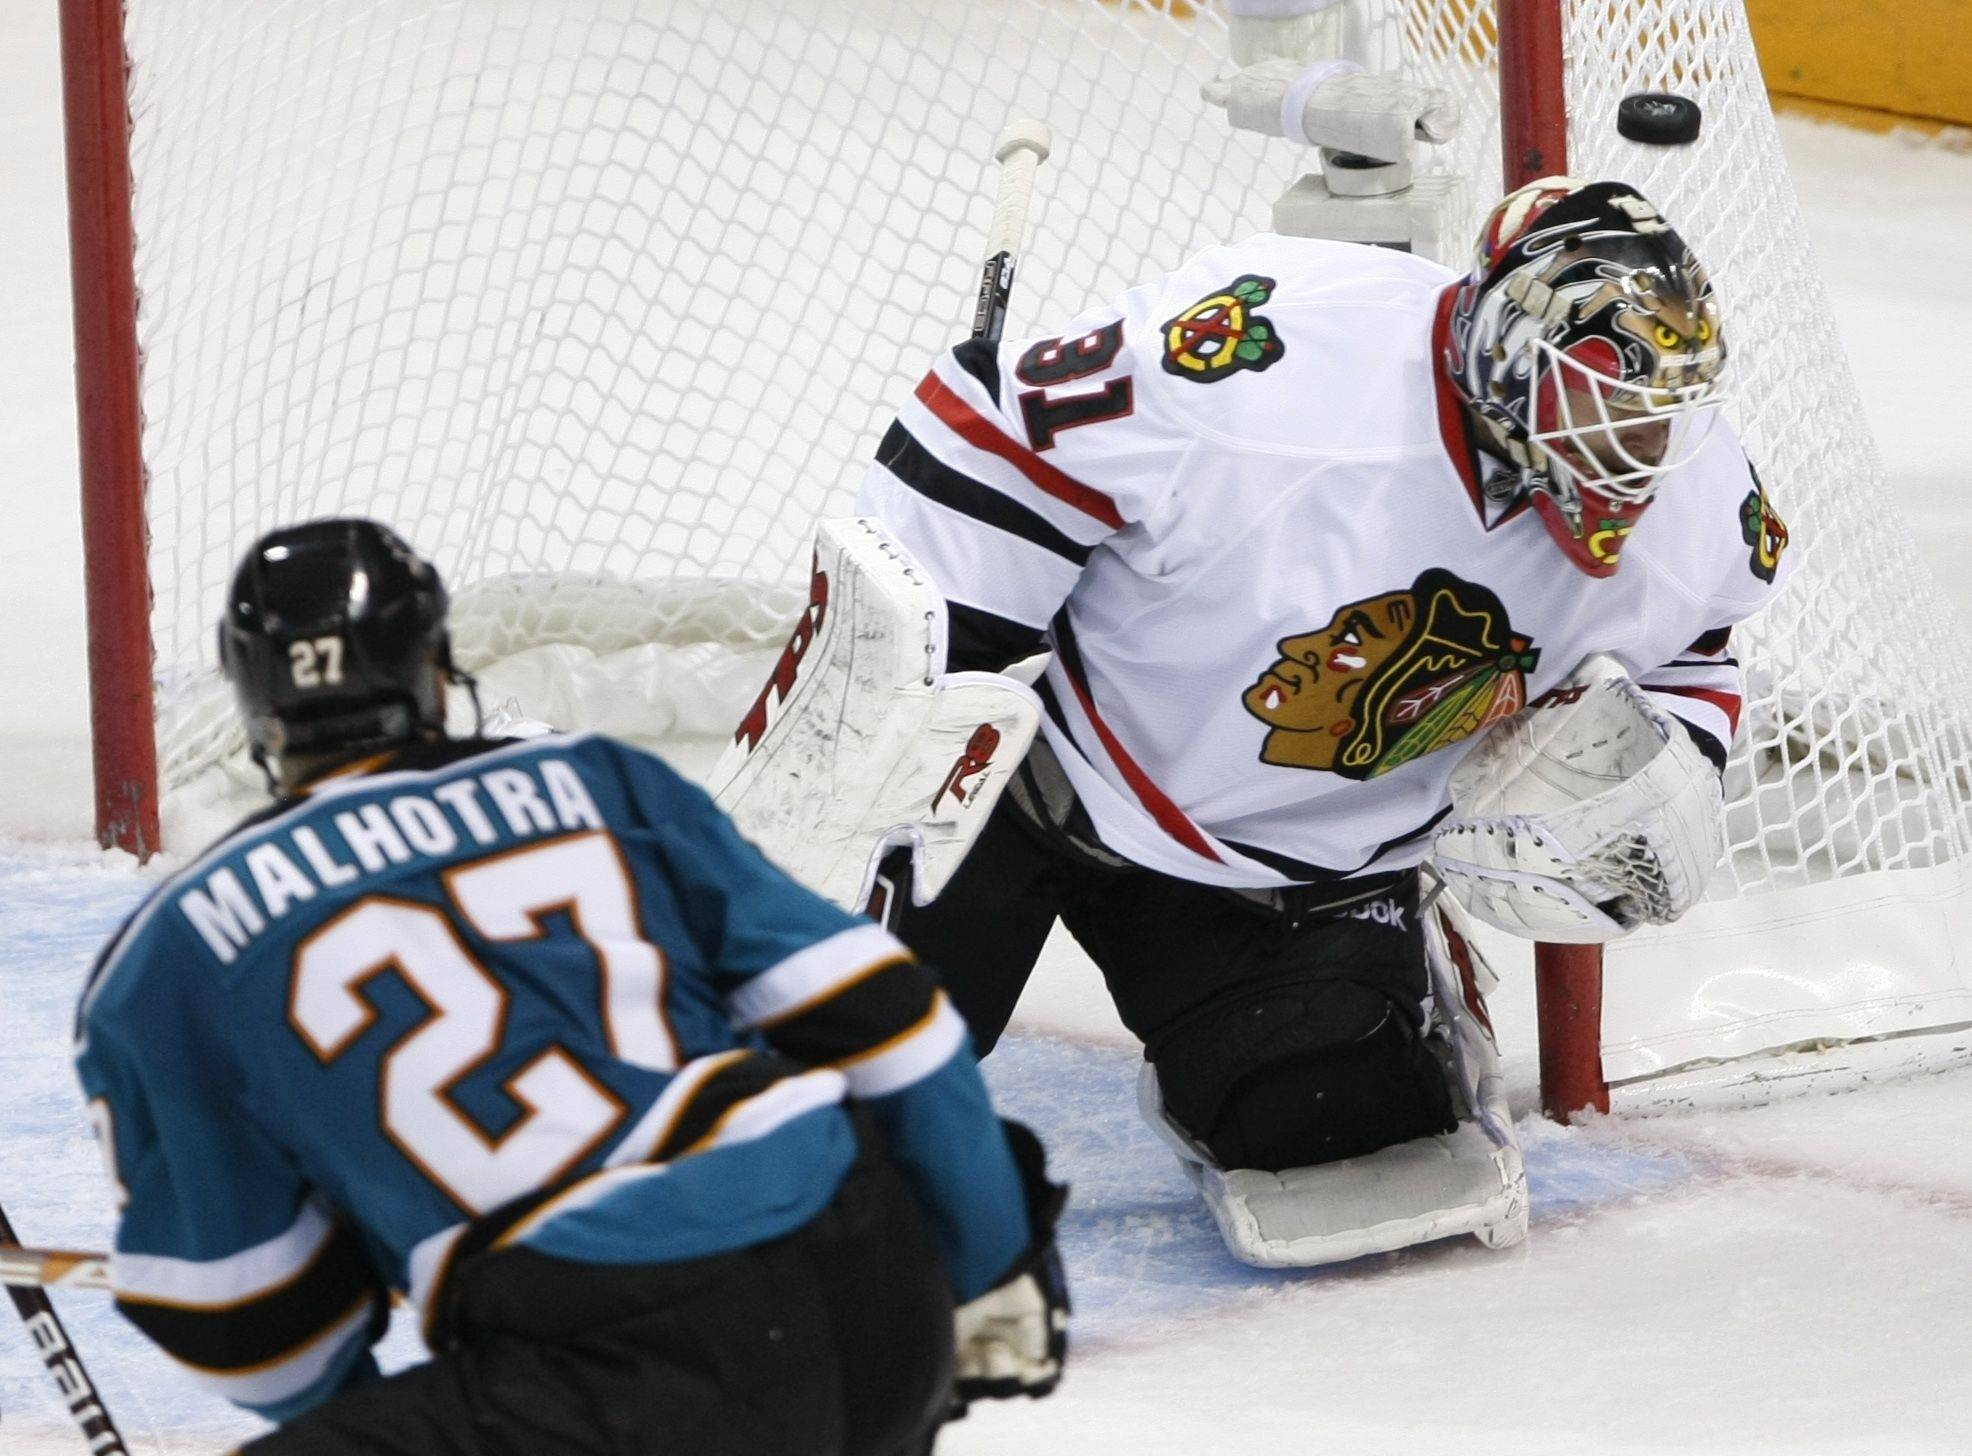 Chicago Blackhawks goalie Antti Niemi blocks a shot by San Jose Sharks center Manny Malhotra during the second period of Game 1 of the NHL hockey Western Conference finals, Sunday.